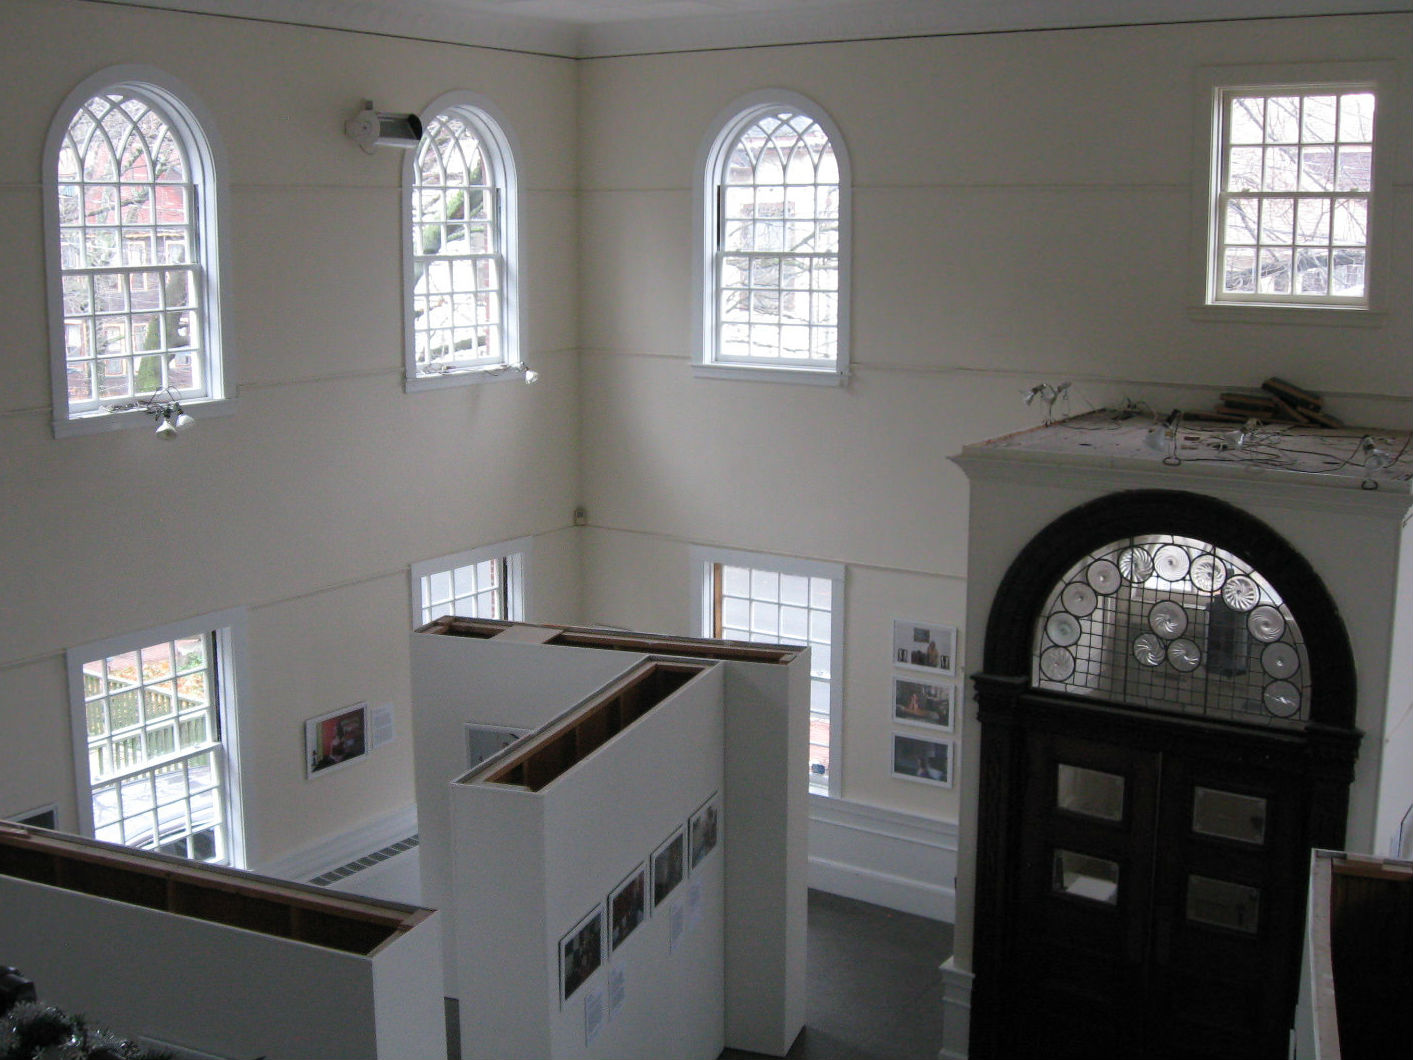 Interior of Somerville Museum